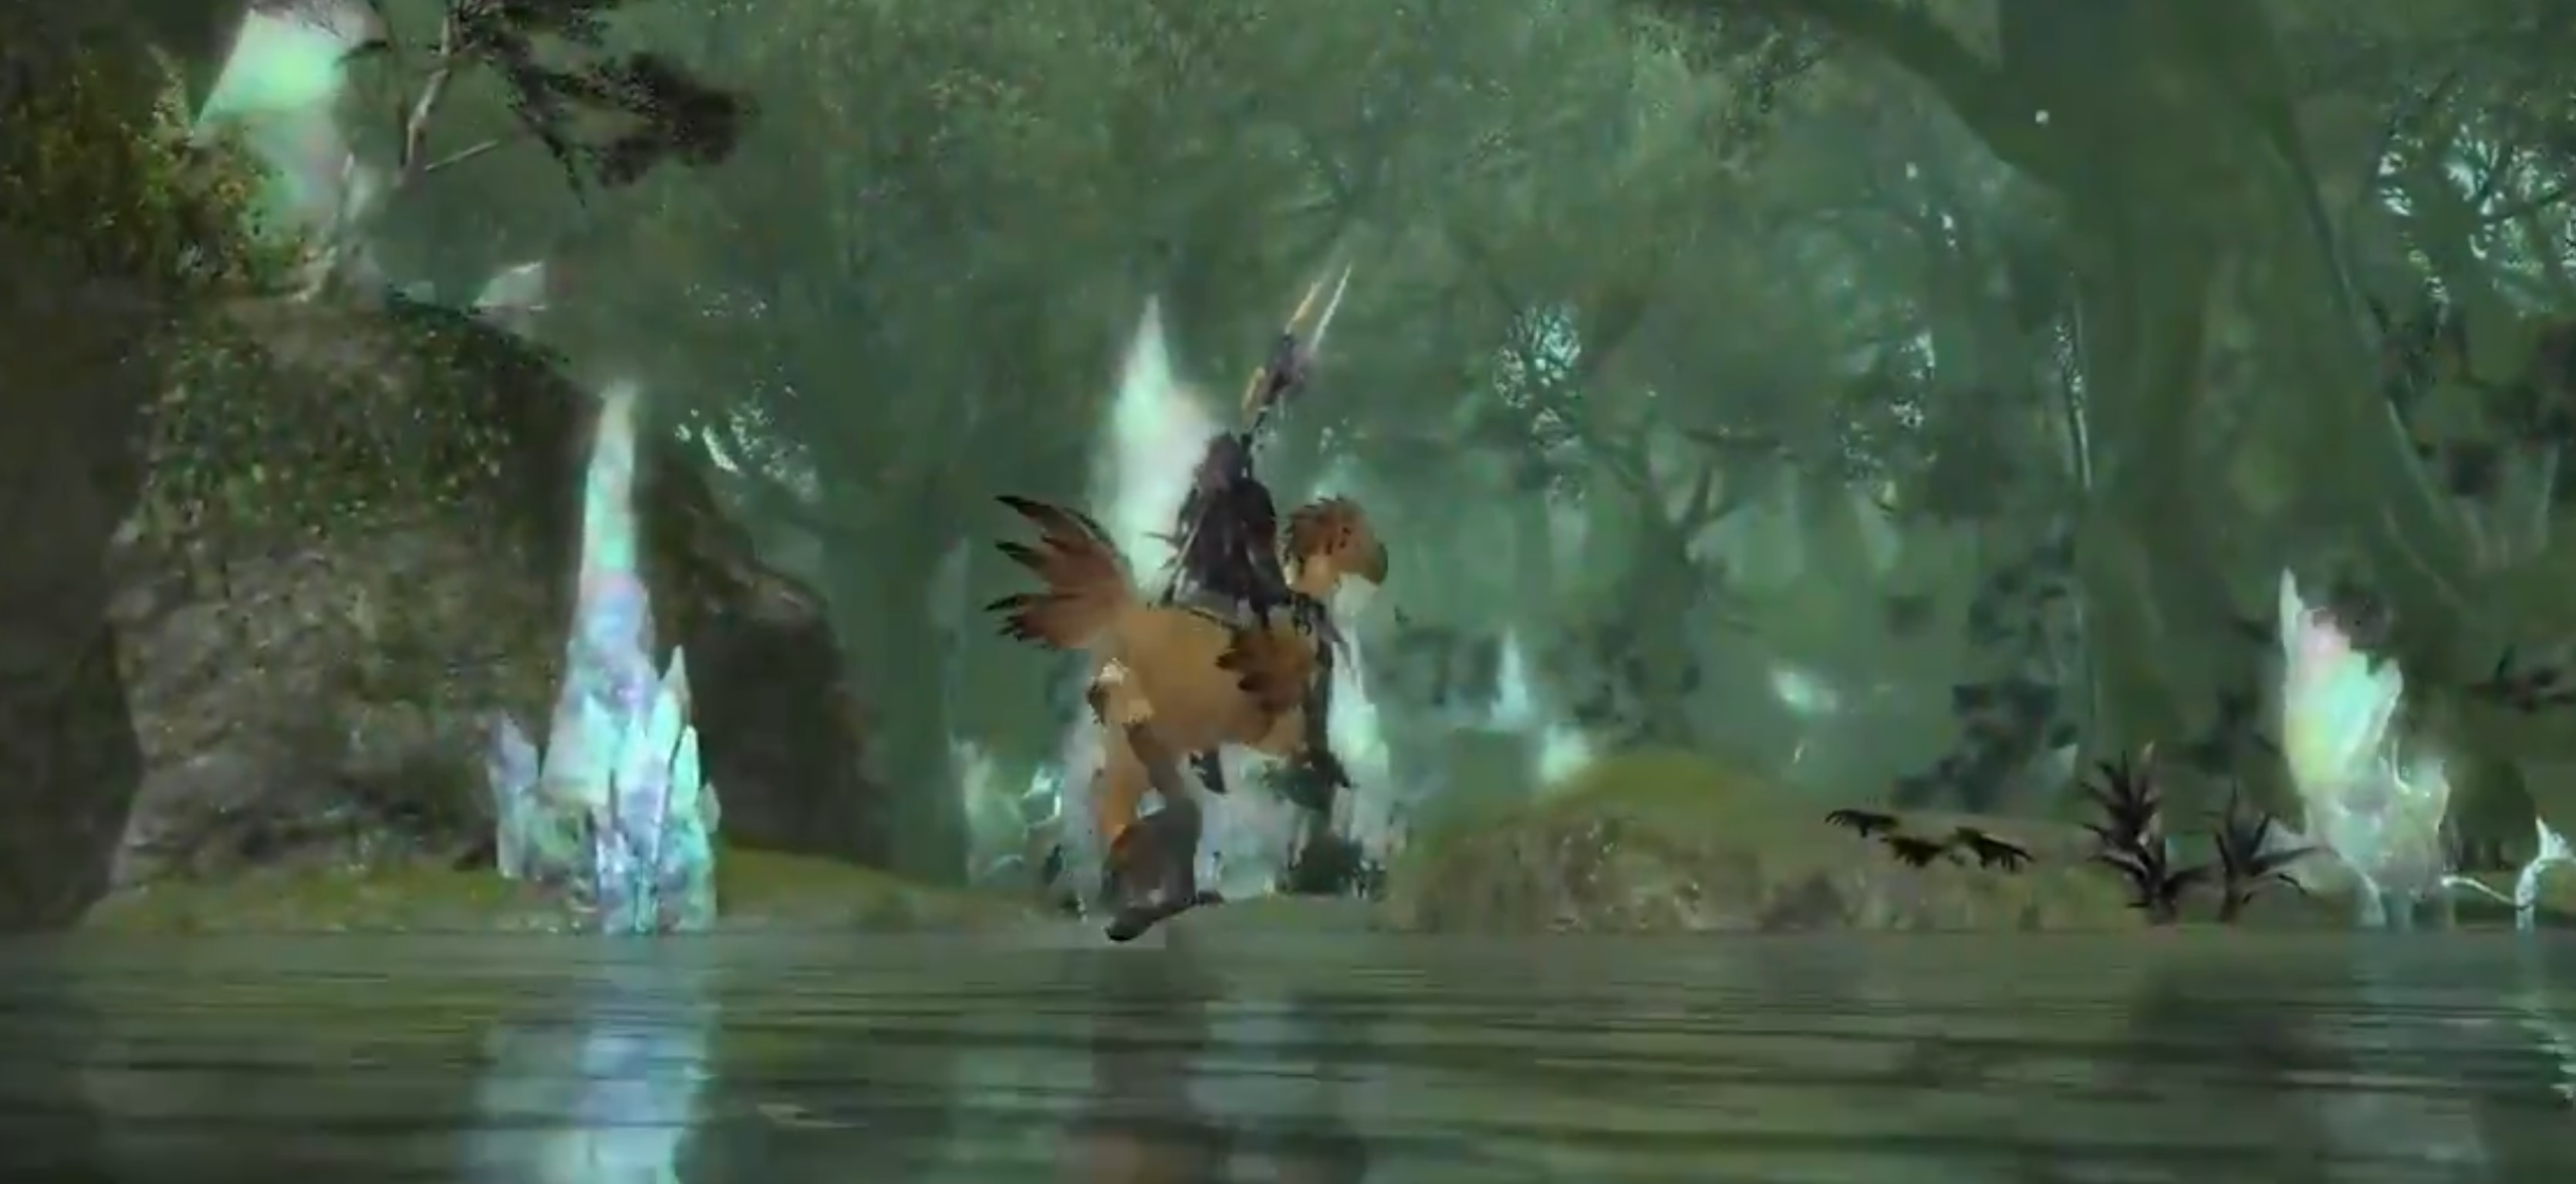 (Update) You can now listen to the Final Fantasy XIV: Endwalker theme without any voiceover or sound effects screenshot